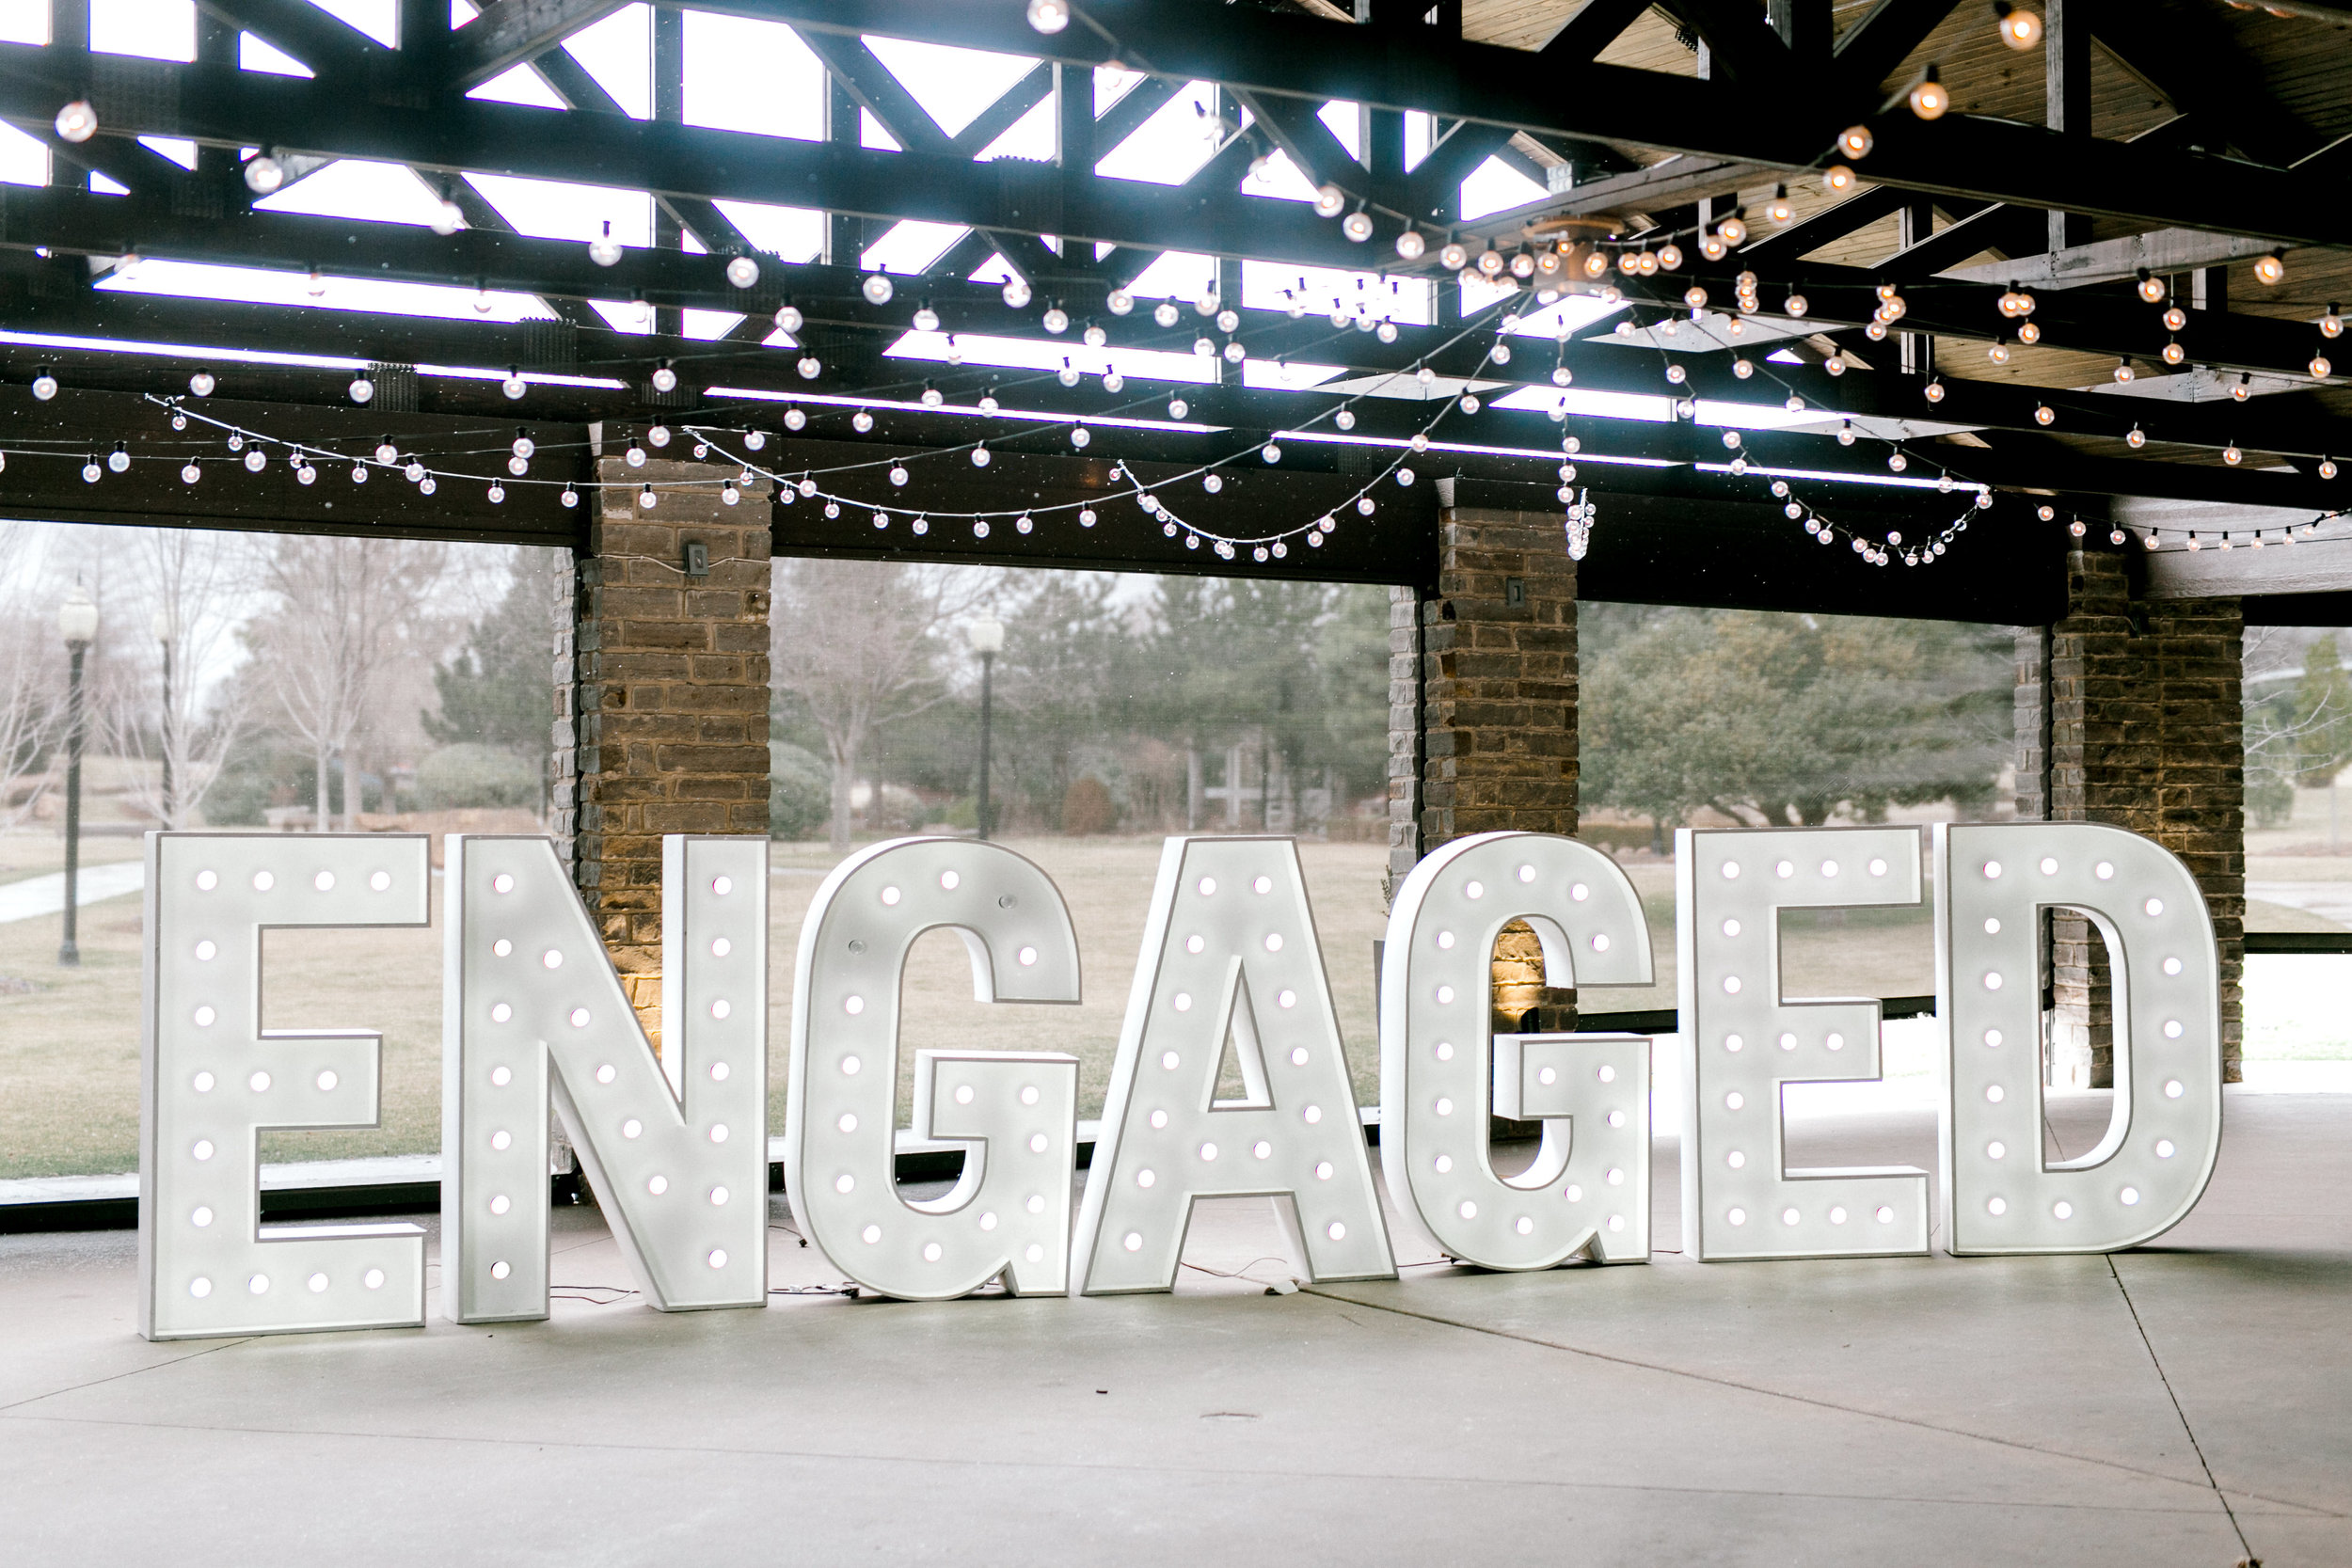 The-Engaged-Event-March-2019-emily-nicole-photo-101.jpg